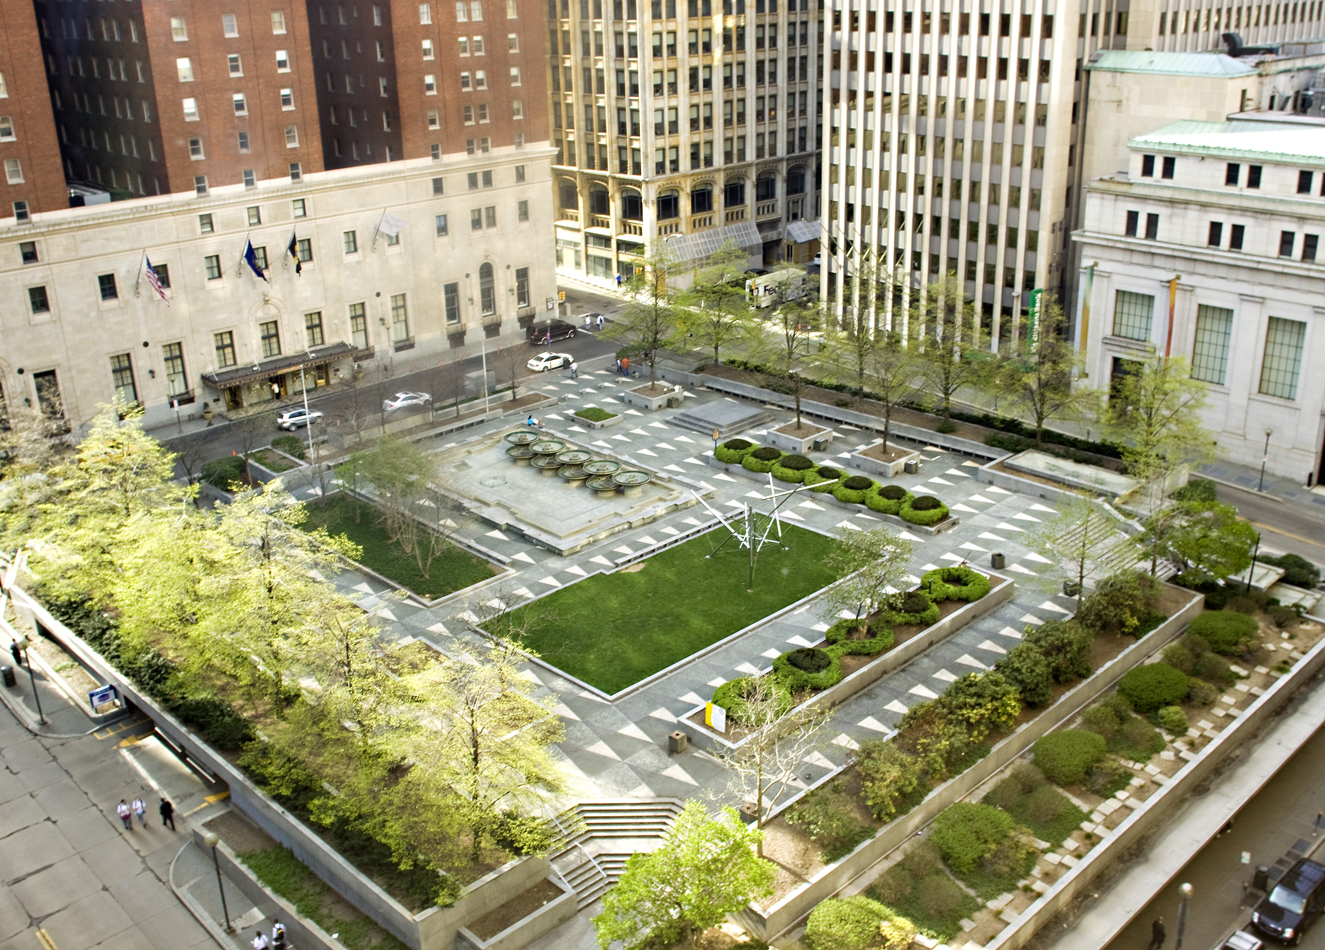 Overhead shot of Mellon Square Park